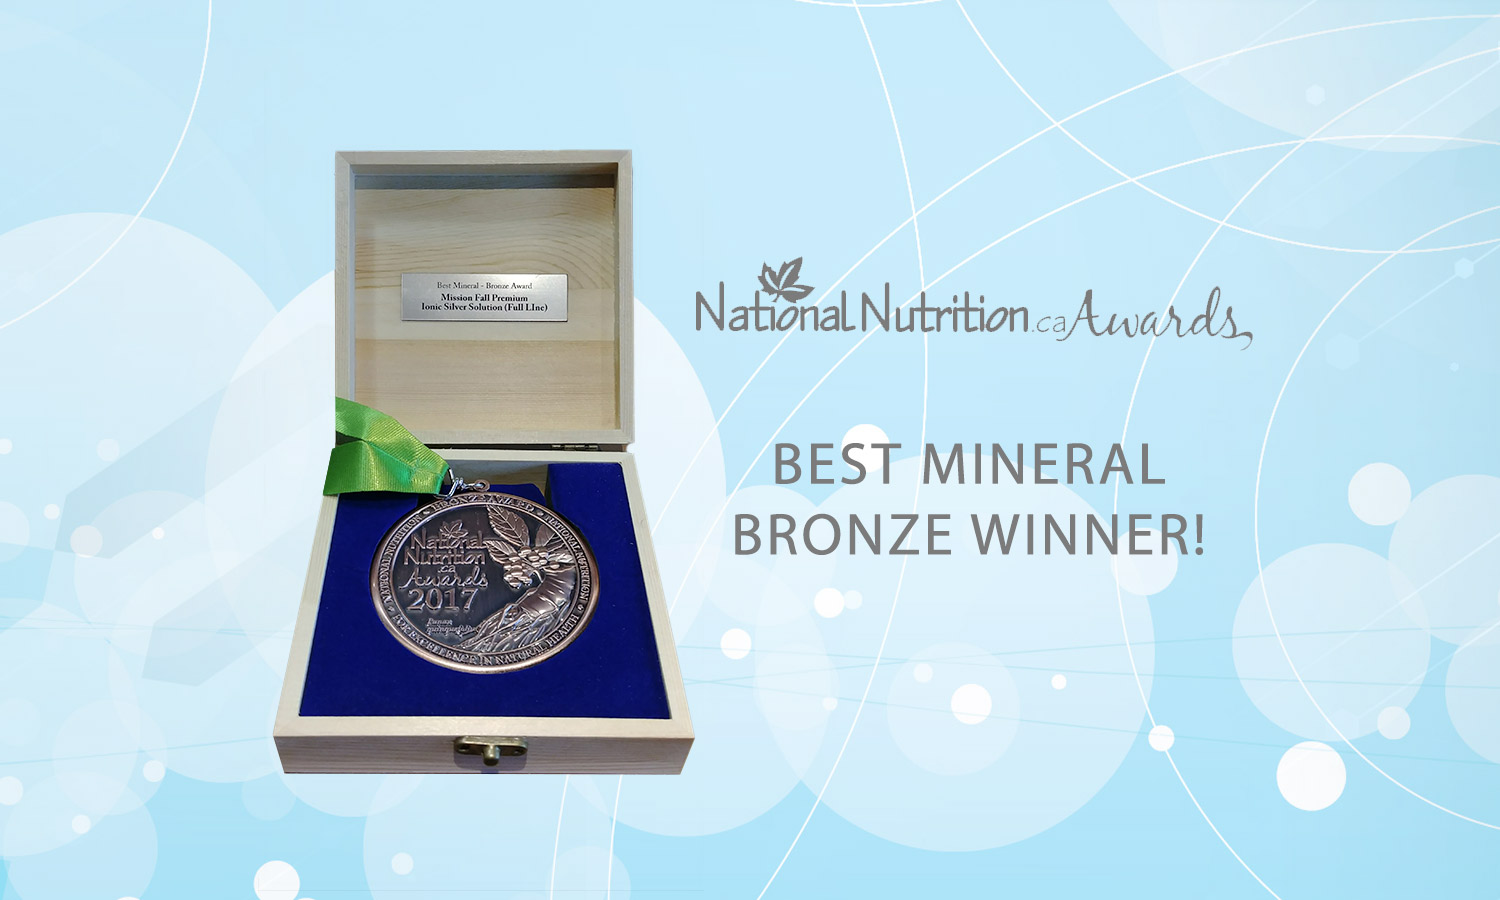 National Nutrition Award